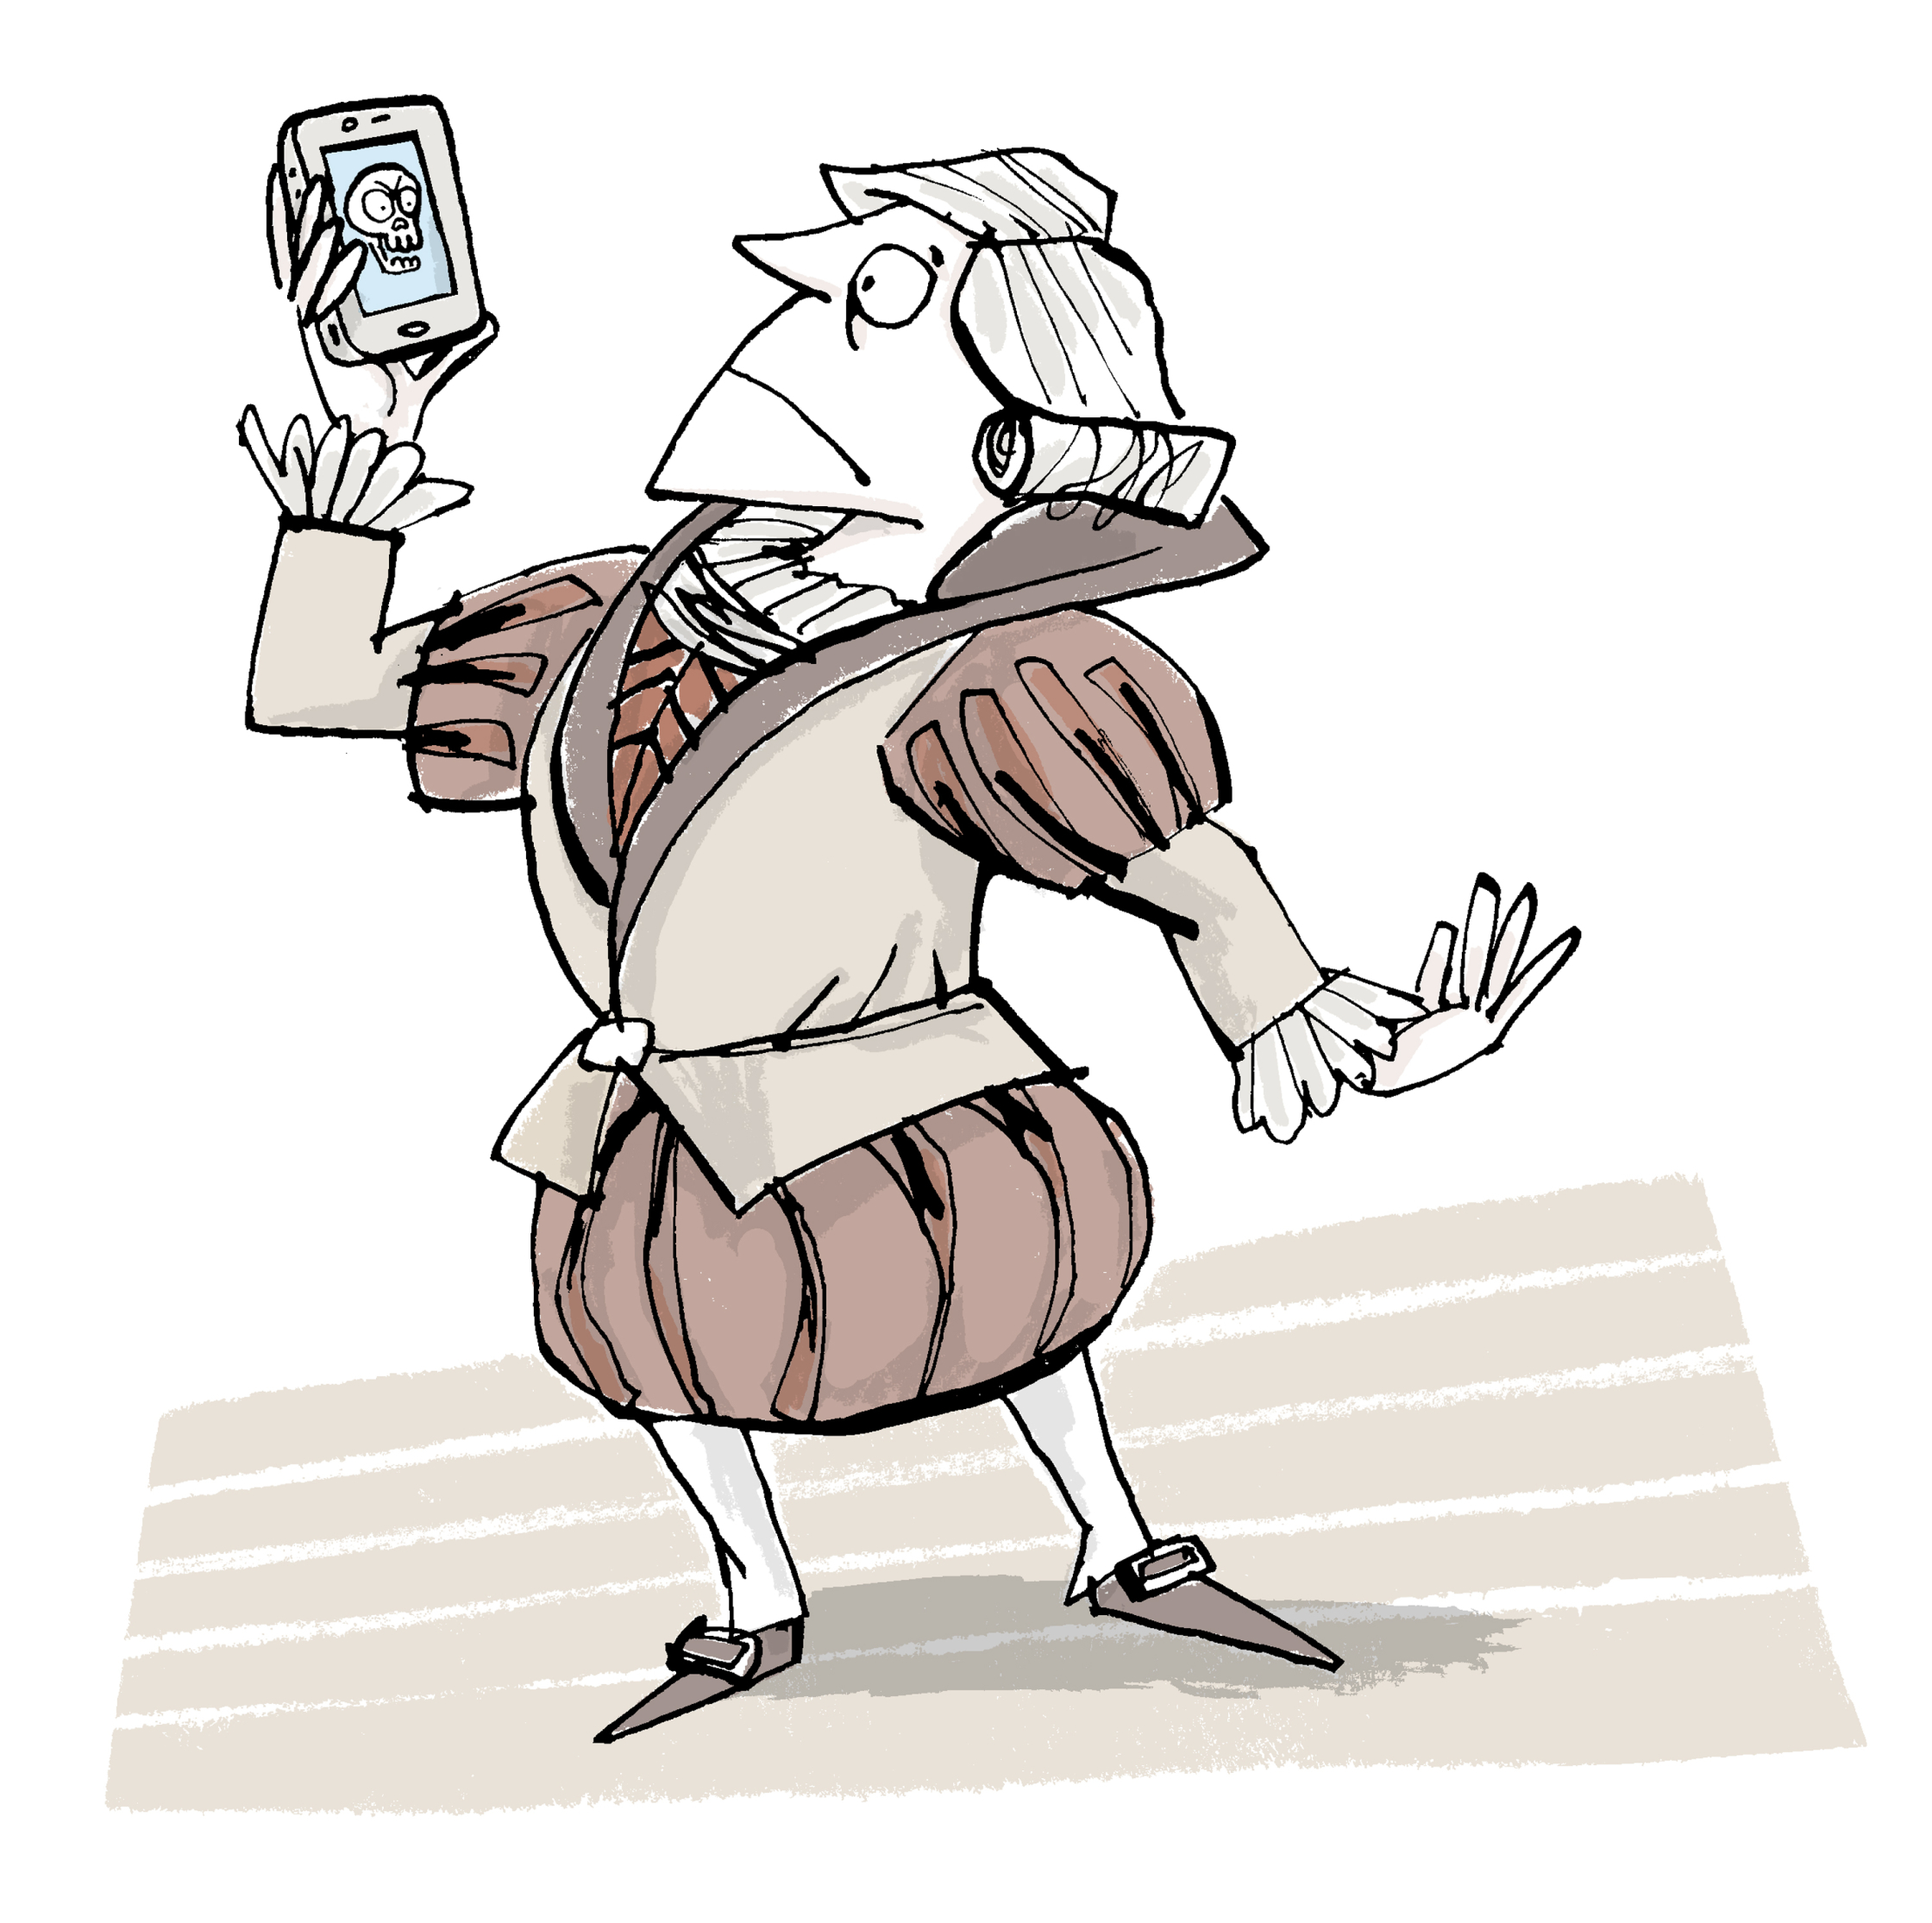 Shakespeare on the Phone